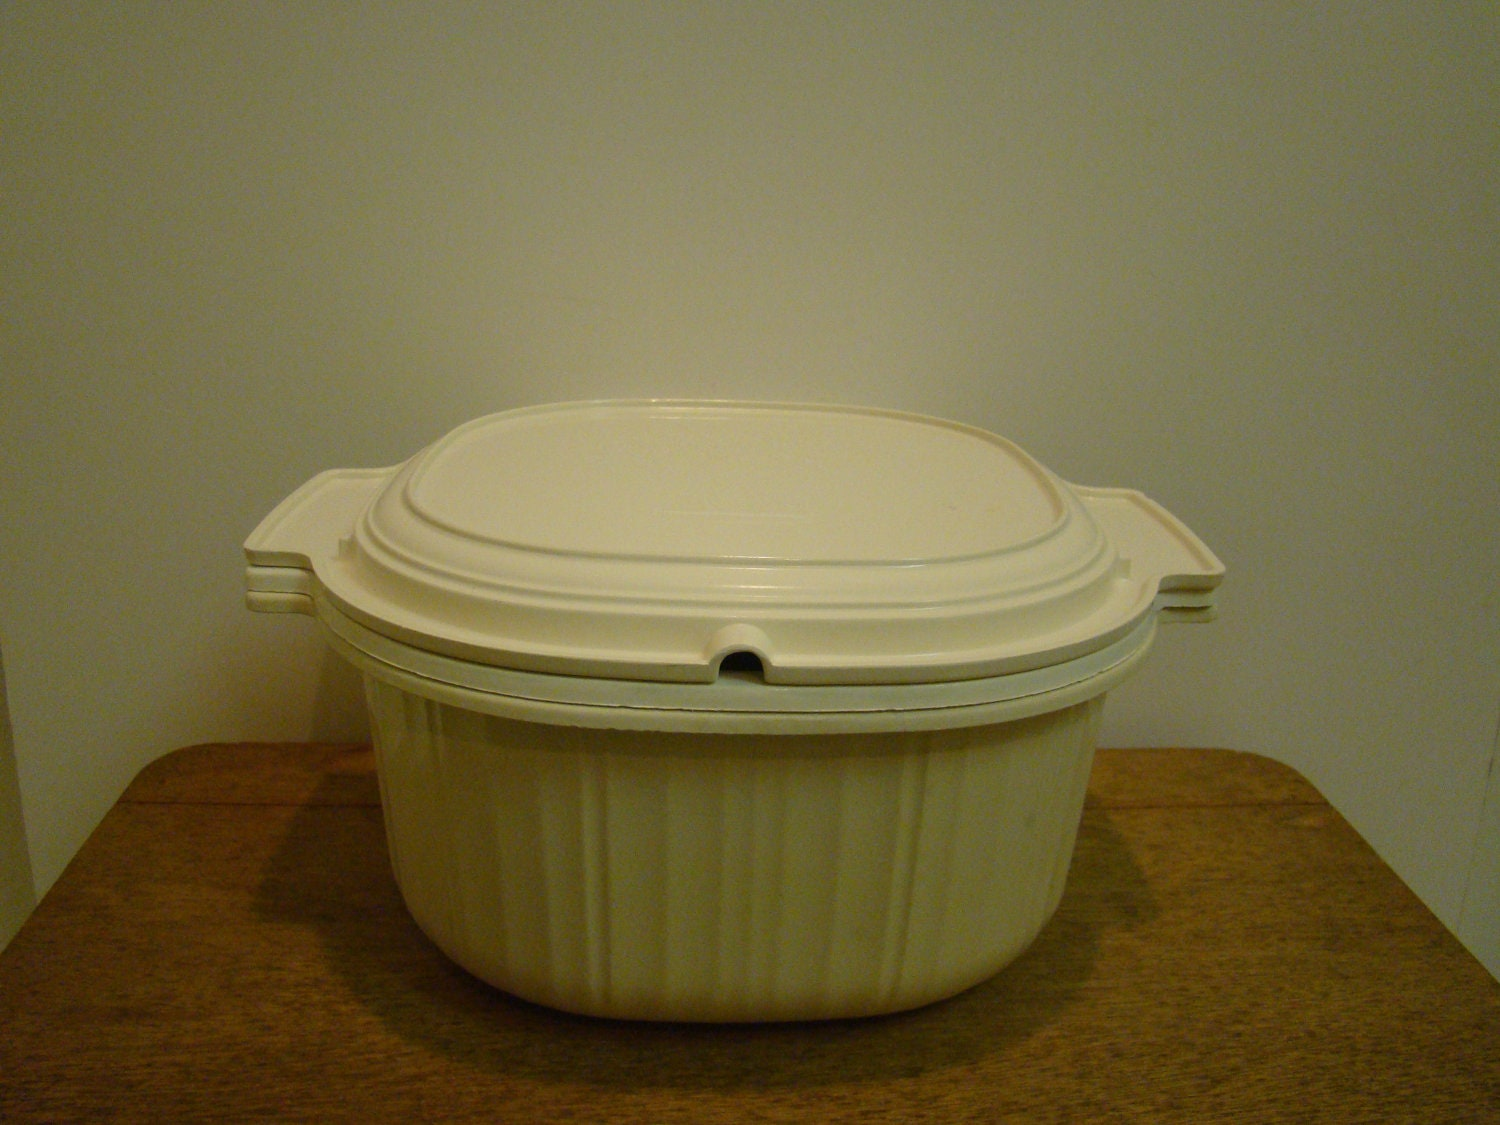 1000039519 further 18 Gallon Rubbermaid Roughneck Tote Steel moreover Rubbermaid Microwave Cookware Steamer 3 further A 14757141 moreover Watch. on rubbermaid plastic storage containers